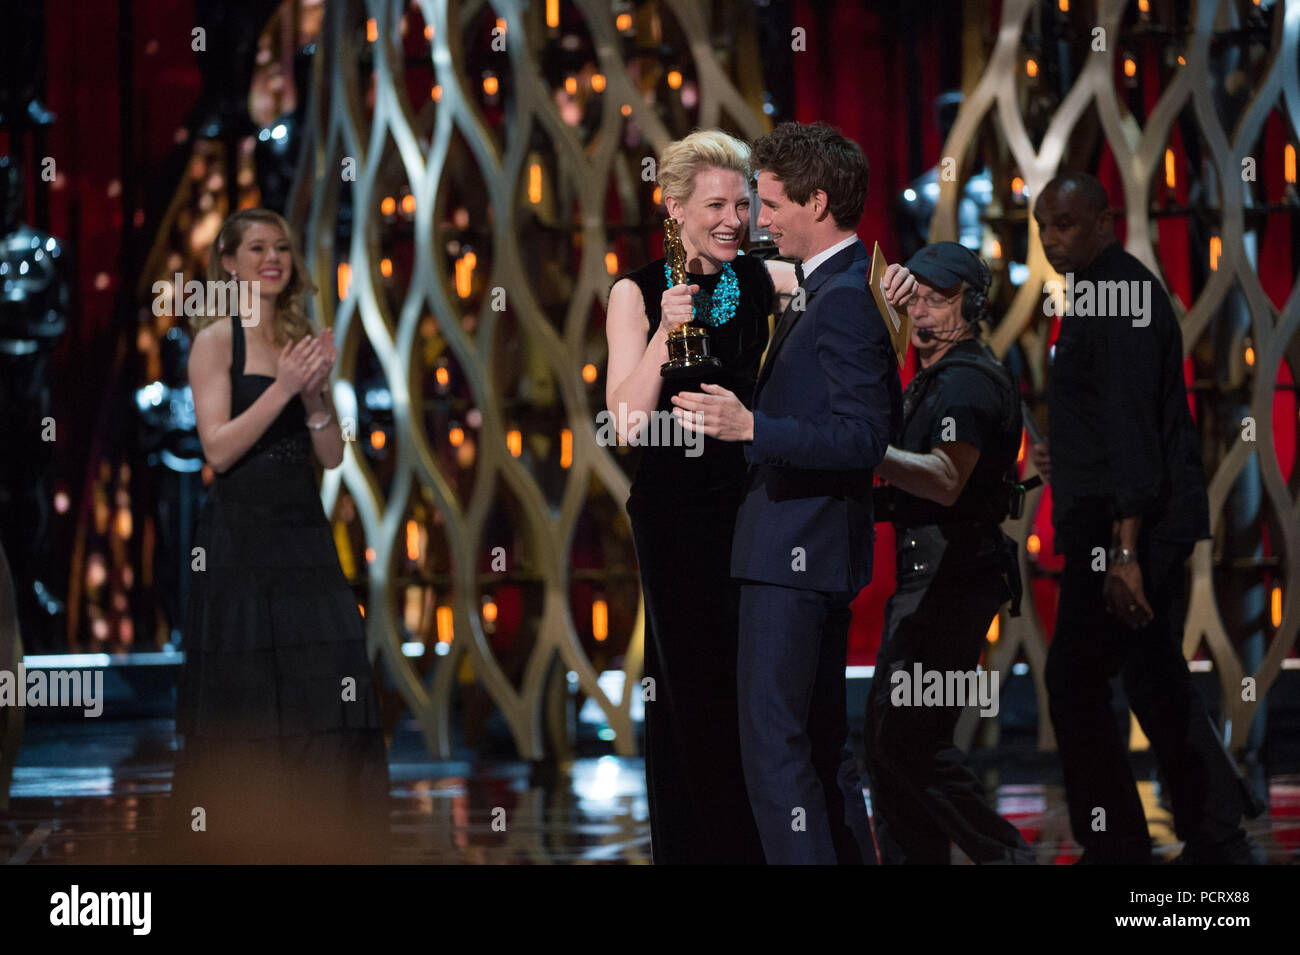 HOLLYWOOD, CA - FEBRUARY 22: Cate Blanchett and Eddie Redmayne onstage during the 87th Annual Academy Awards at Dolby Theatre on February 22, 2015 in Hollywood, California.   People:  Cate Blanchett and Eddie Redmayne - Stock Image